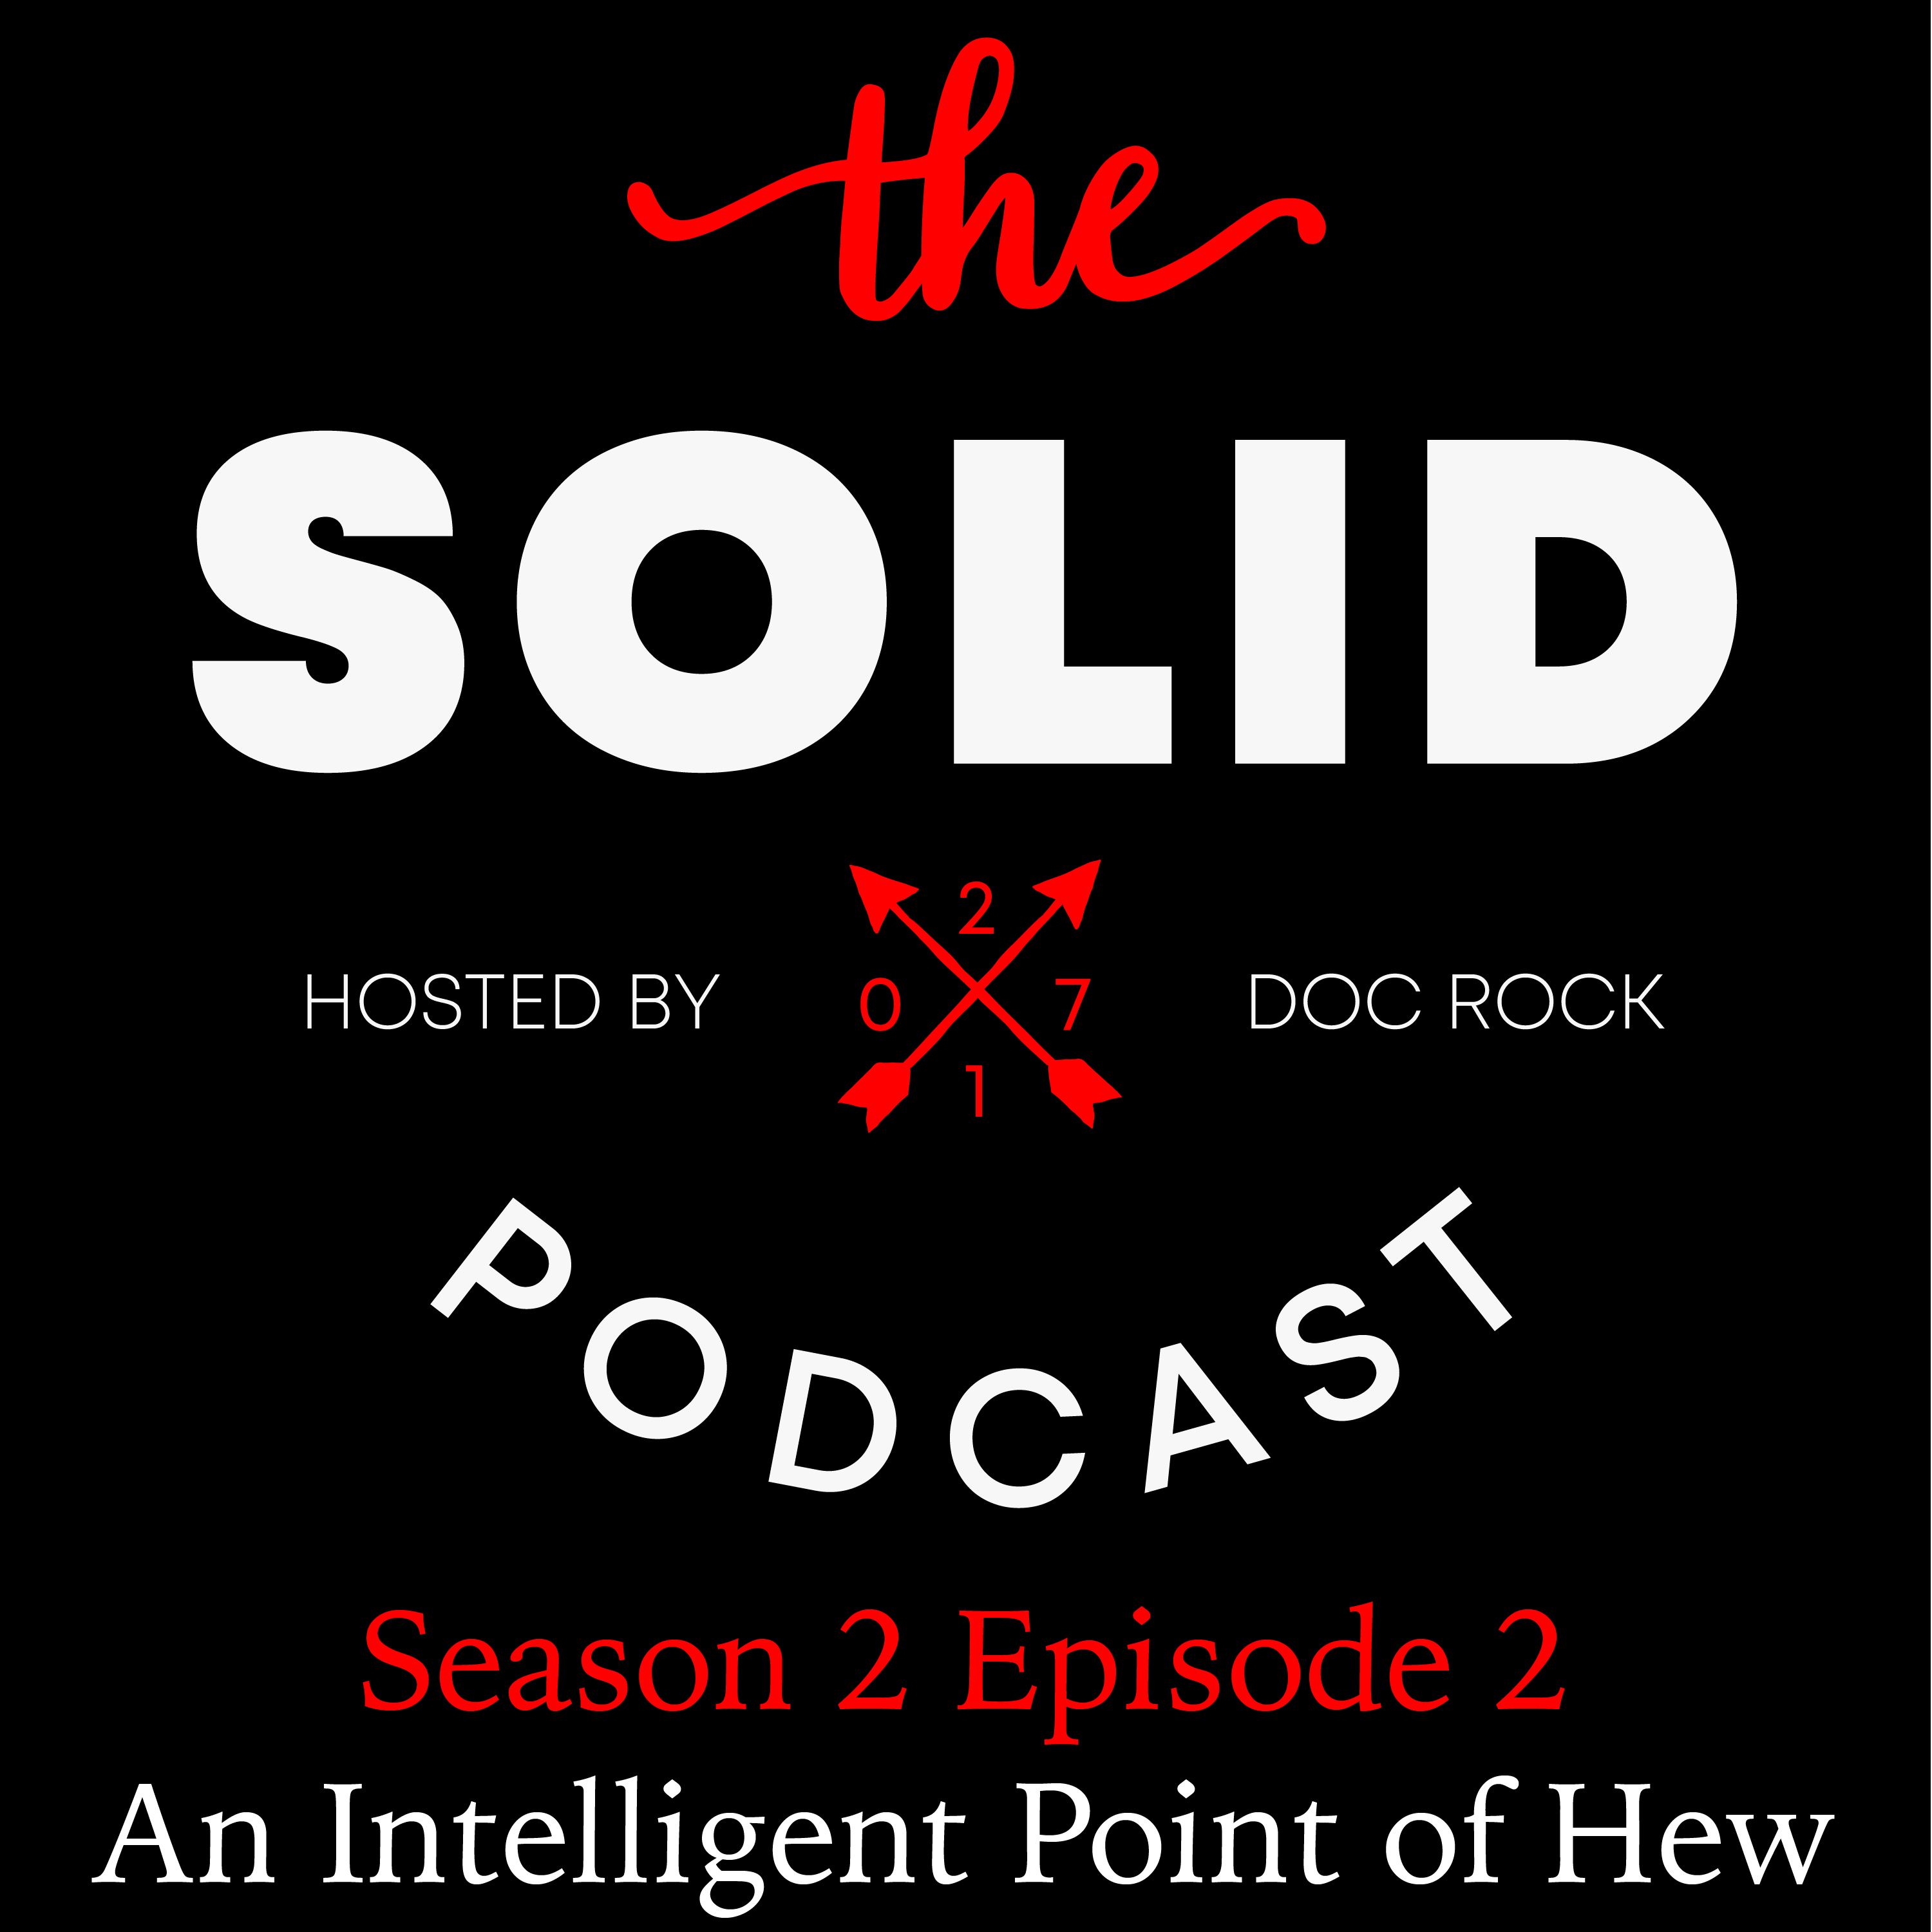 The Solid Podcast: Season 2 Episode 2 - An Intelligent Point of Hew